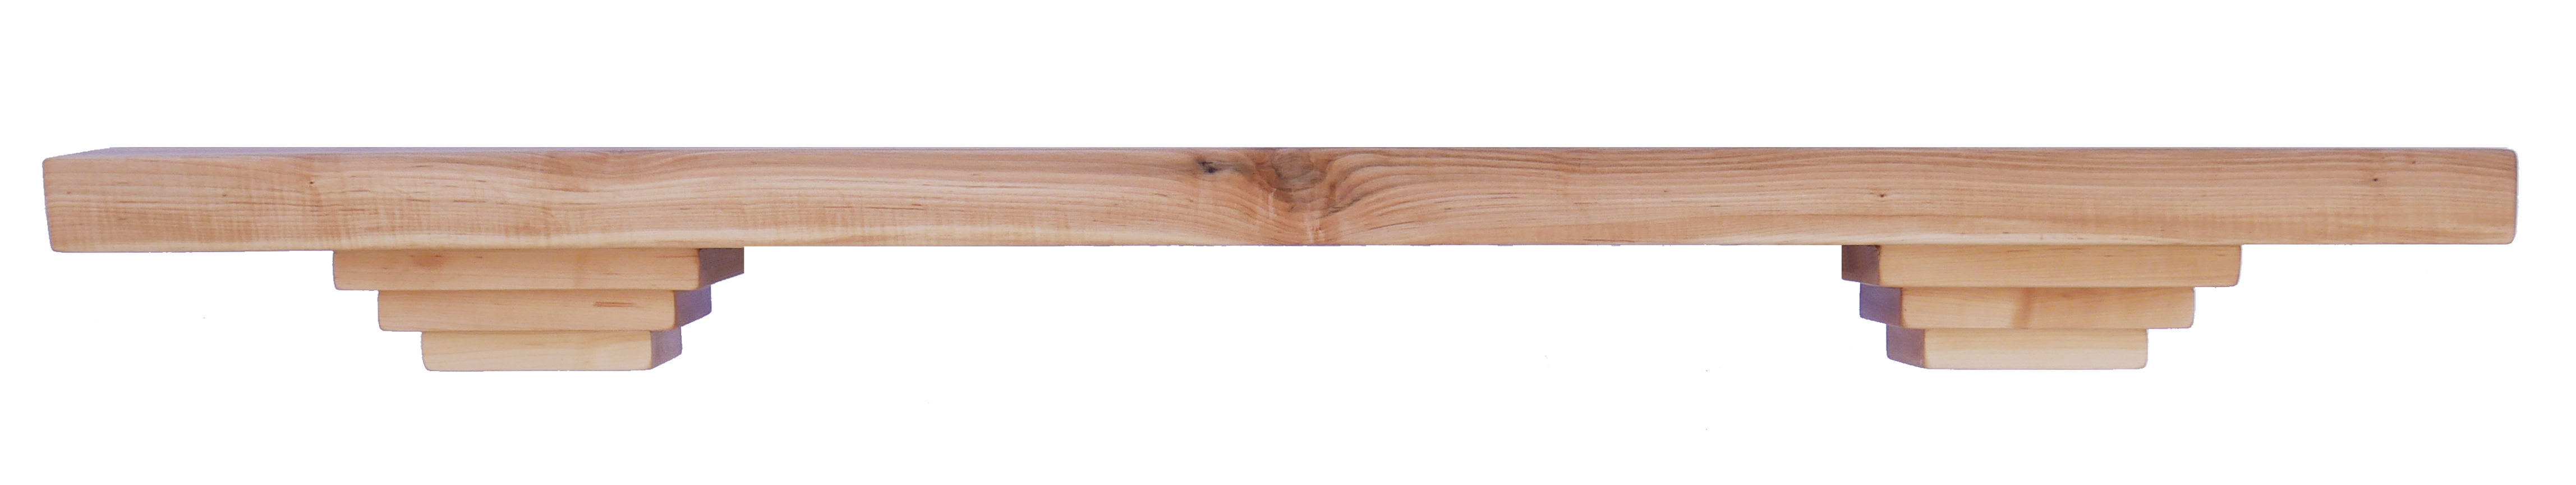 Figured maple wood fireplace mantel